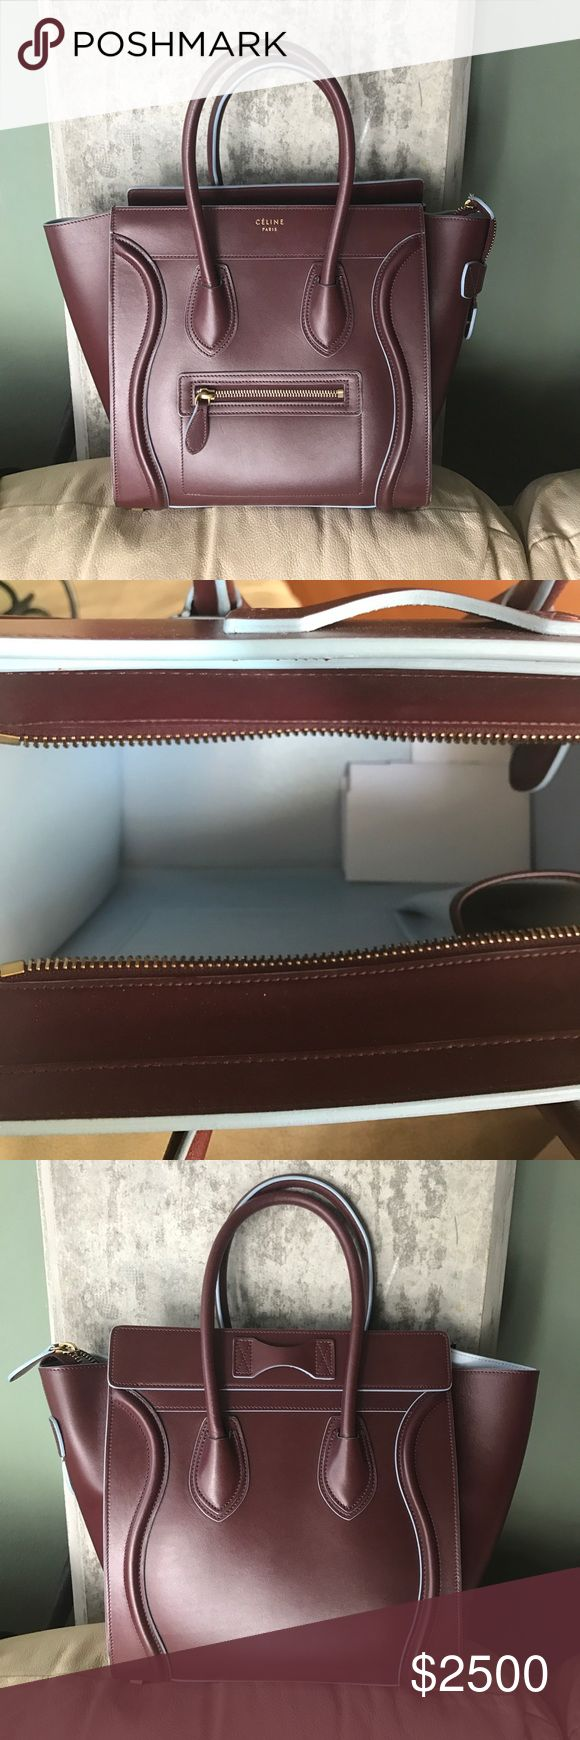 Celine Luggage tote Limited edition Medium sized Luggage bag in oxblood with baby blue piping. This is the Micro size, not the Nano. Smooth calf leather. Gold zippers. Beautiful bag. Authentic.  $3300 plus tax retail because of the piping.  Got another one in black so haven't been using this one. Would love to find a good home for it.  Worn less than a handful of times and is in immaculate condition.  Comes with dustbag. Will include shopping bag as well upon request. Celine Bags